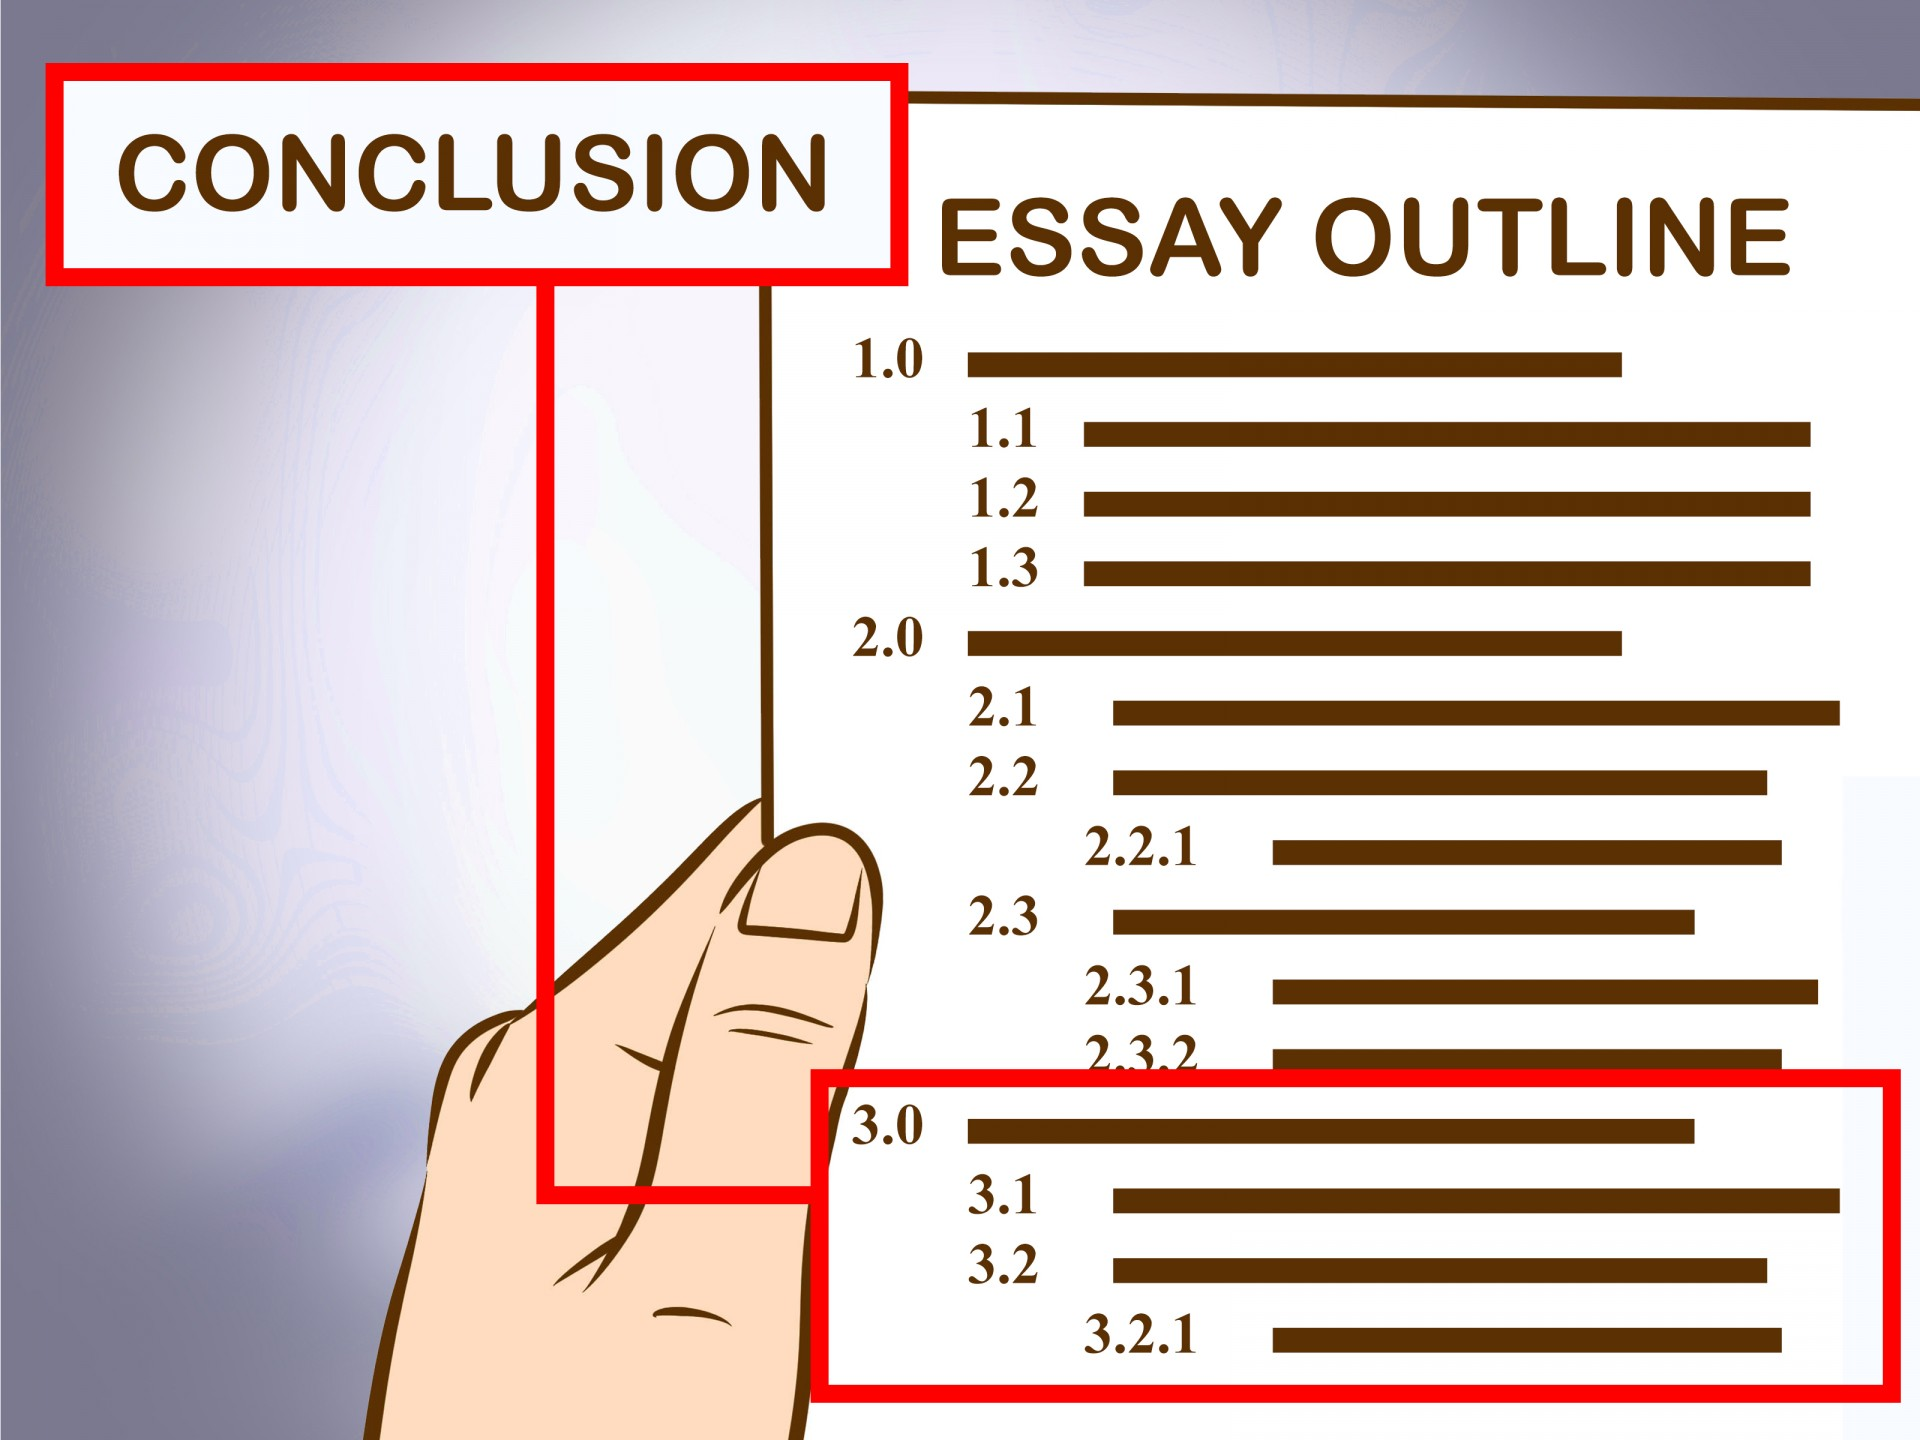 004 Essay Example Write An Outline Step Version How To Surprising Do Academic Fast Conclusion On A Book I Cite In Apa Format 1920